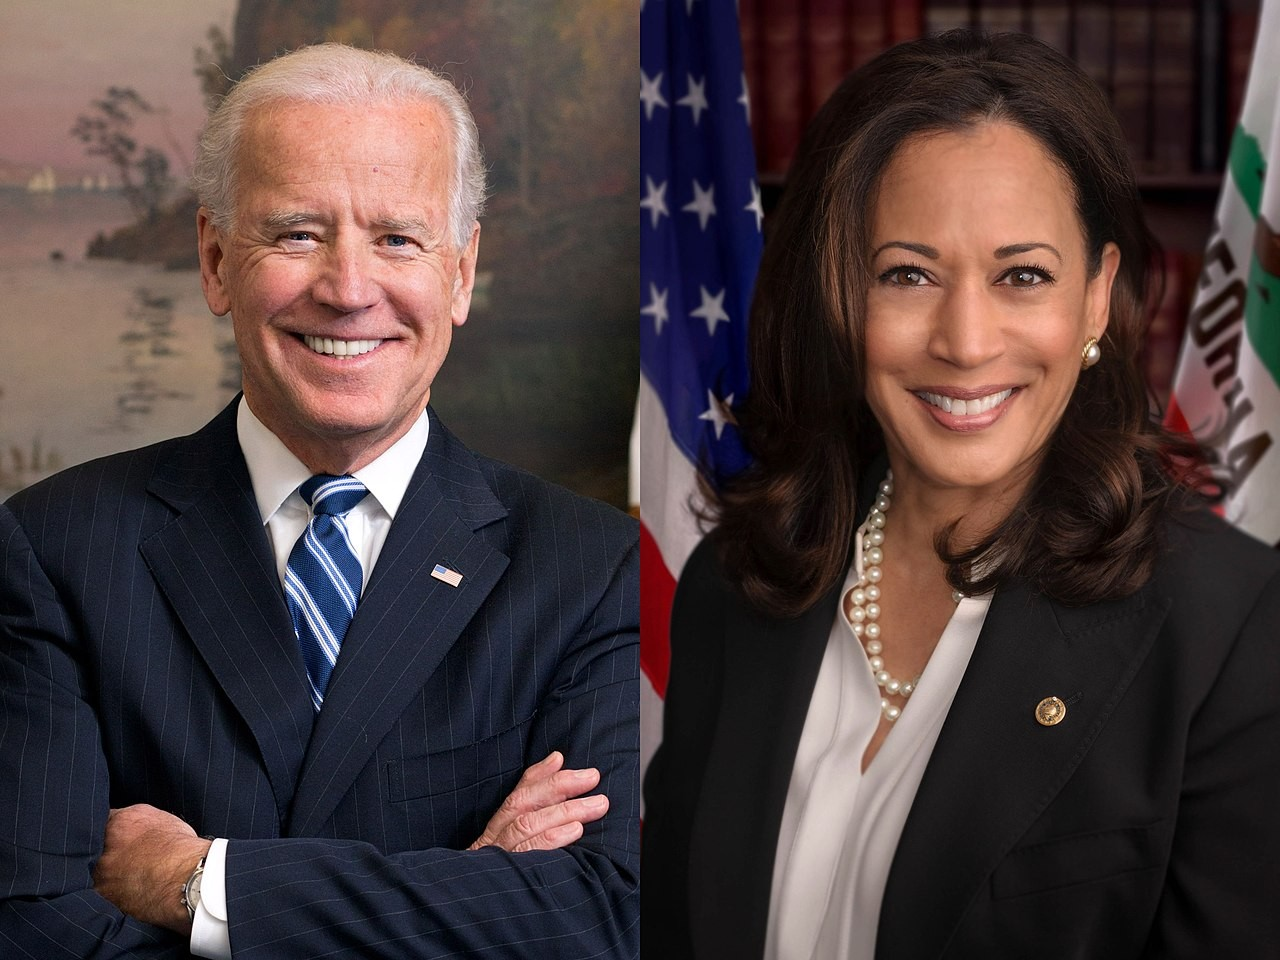 1280px-Joe_Biden,_Kamala_Harris_(collage)